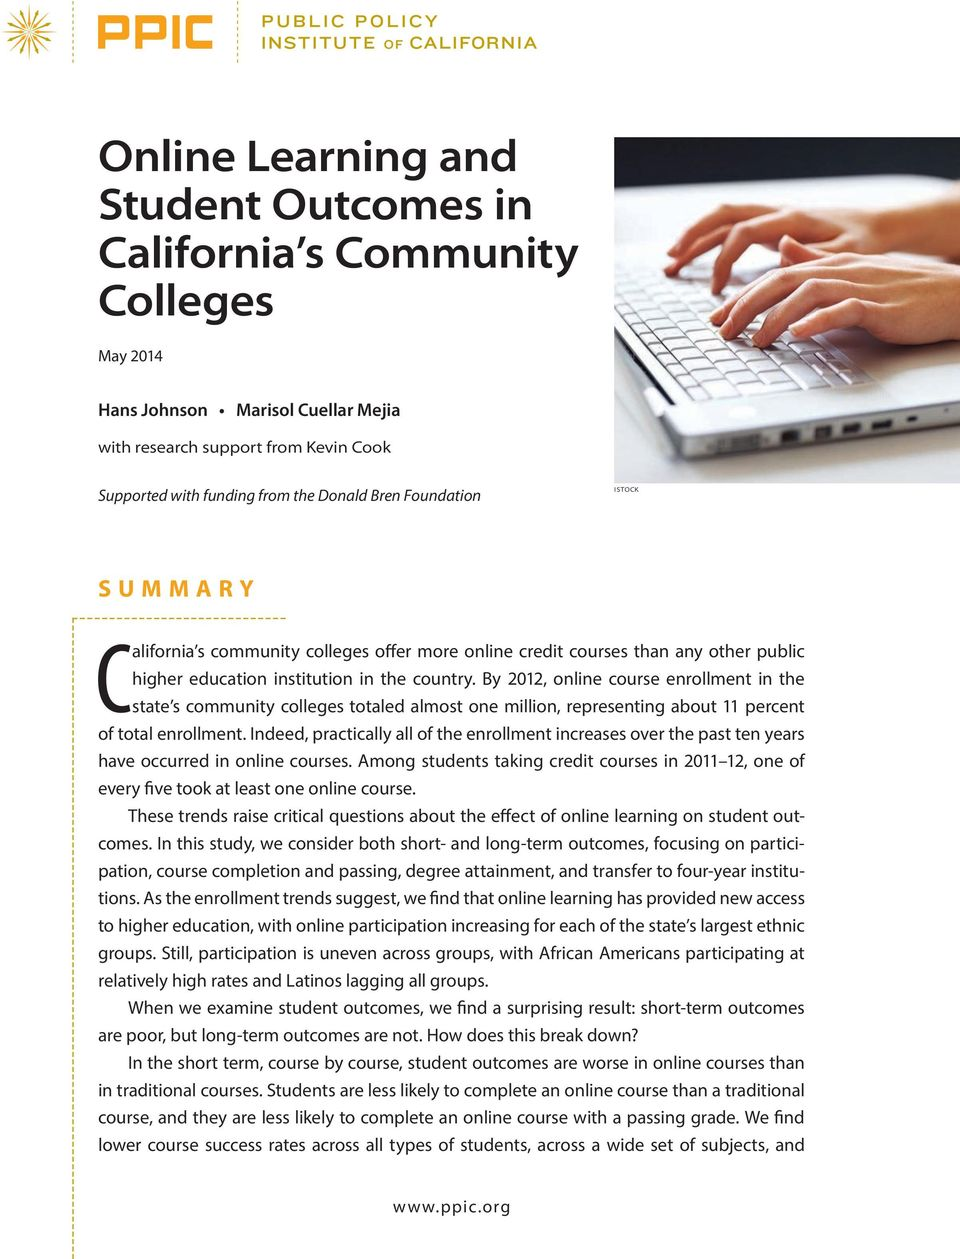 By 2012, online course enrollment in the state s community colleges totaled almost one million, representing about 11 percent of total enrollment.